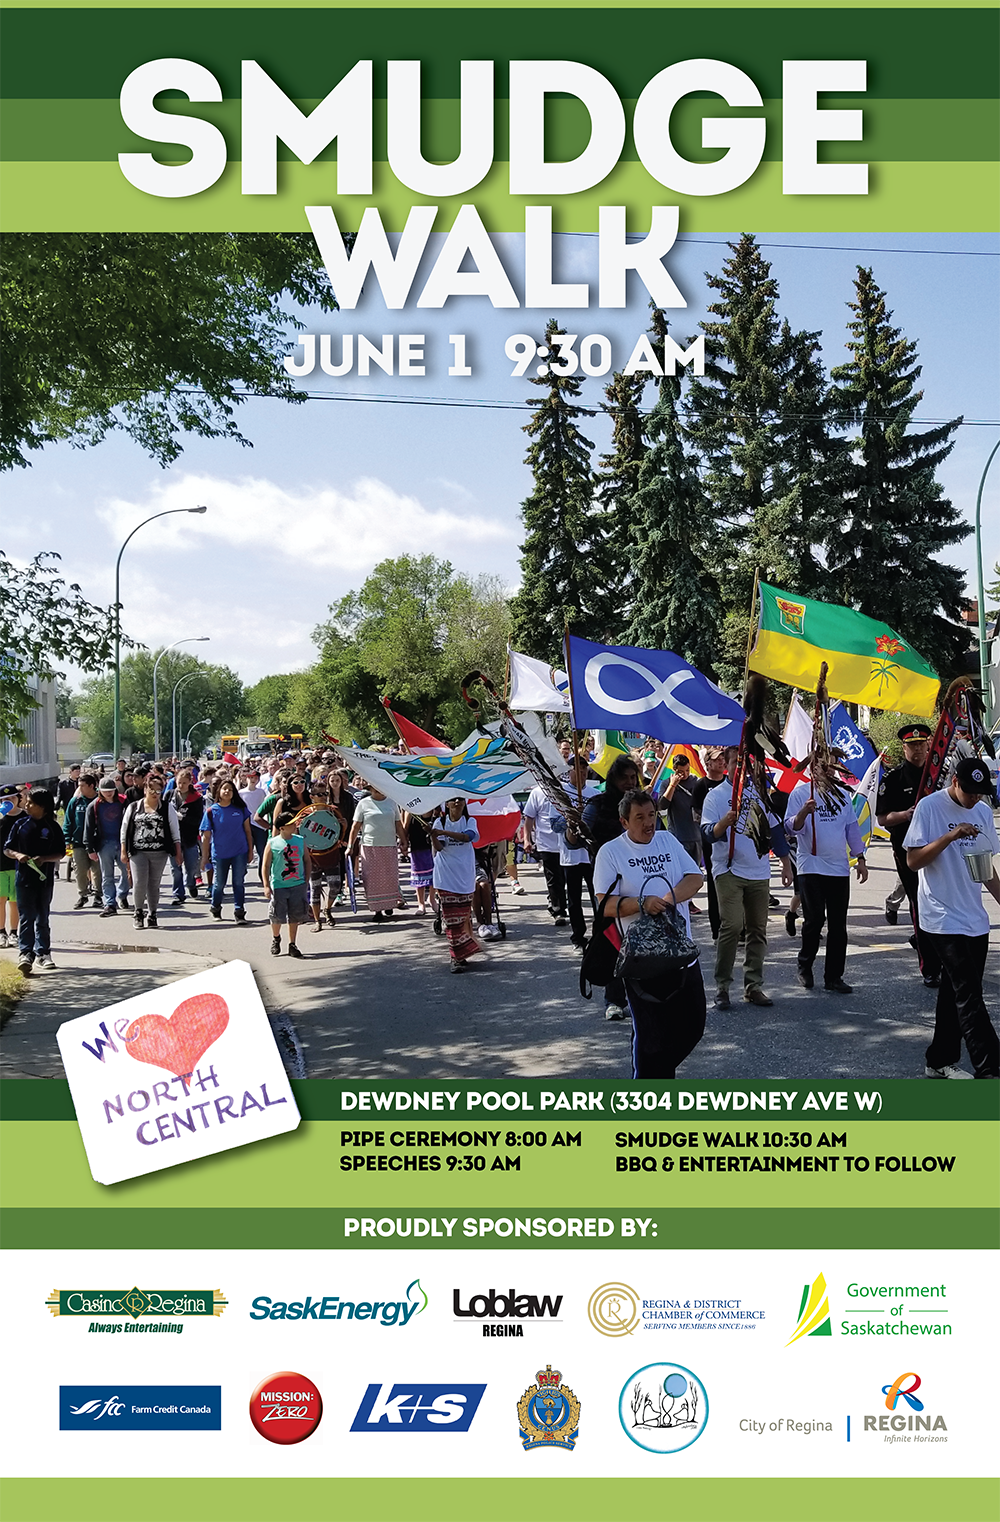 Regina's Annual Smudge Walk - Friday June 1, 2018!  Everyone welcome - Image 1